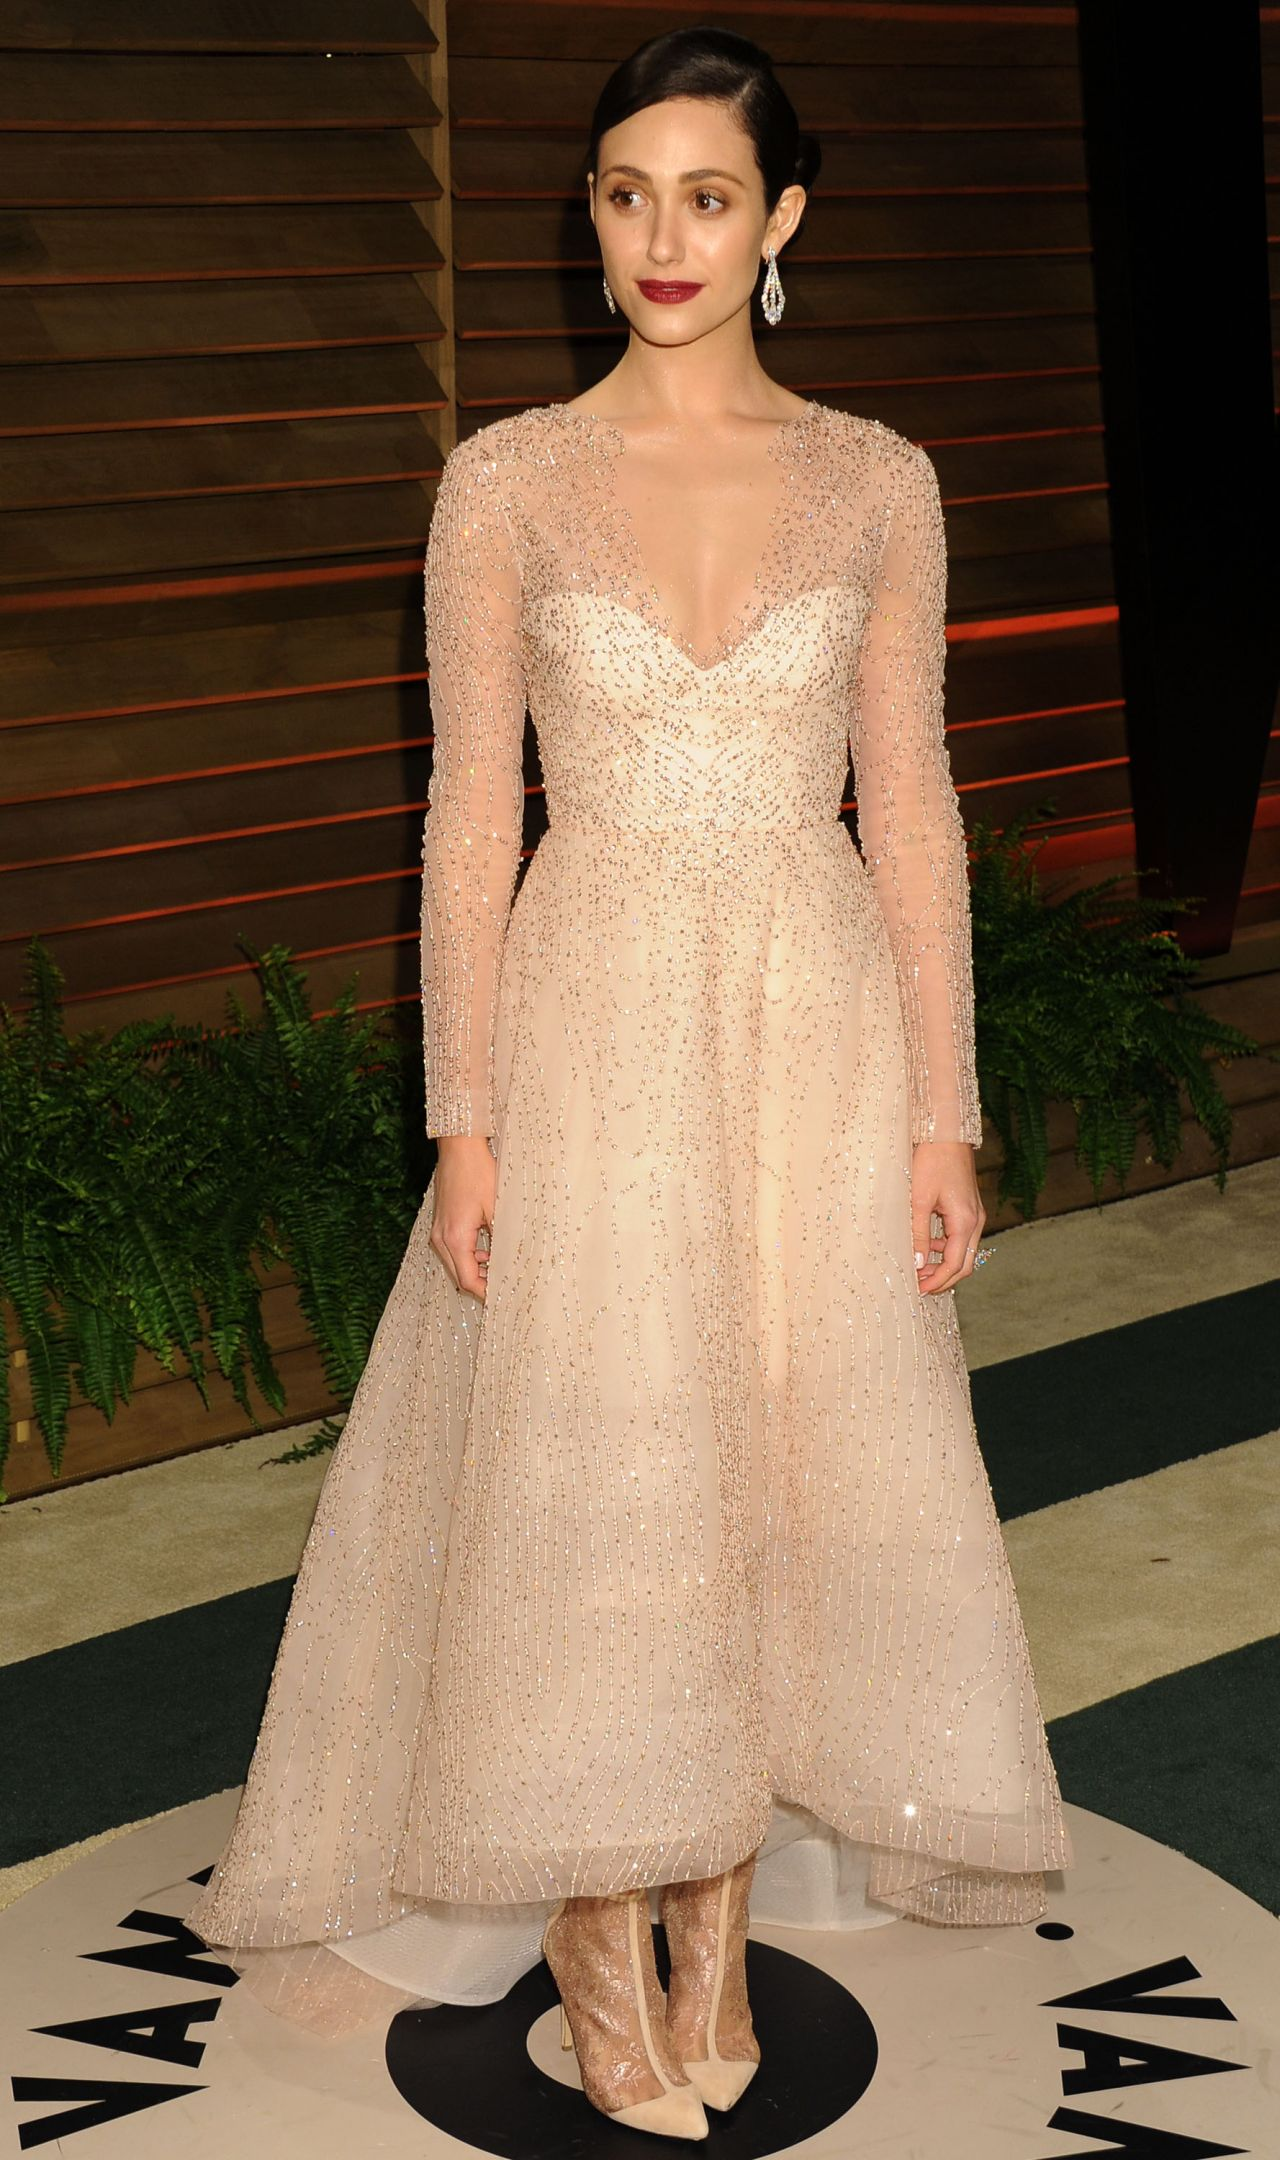 Emmy Rossum Wearing Monique Lhuillier Dress - 2014 Vanity Fair Oscars Party